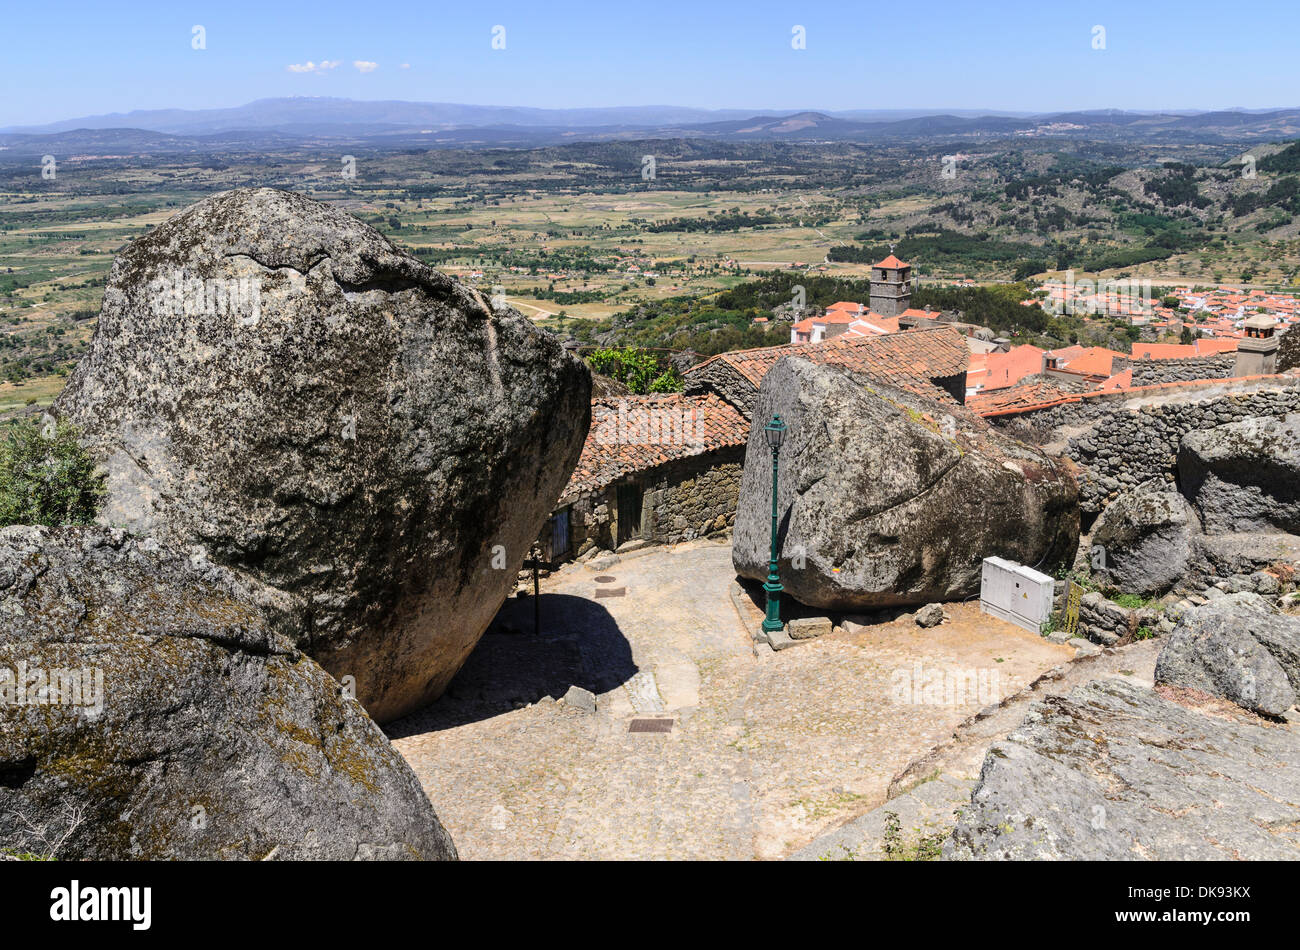 The granite rocks forming part of the medieval village Monsanto, Portugal Stock Photo